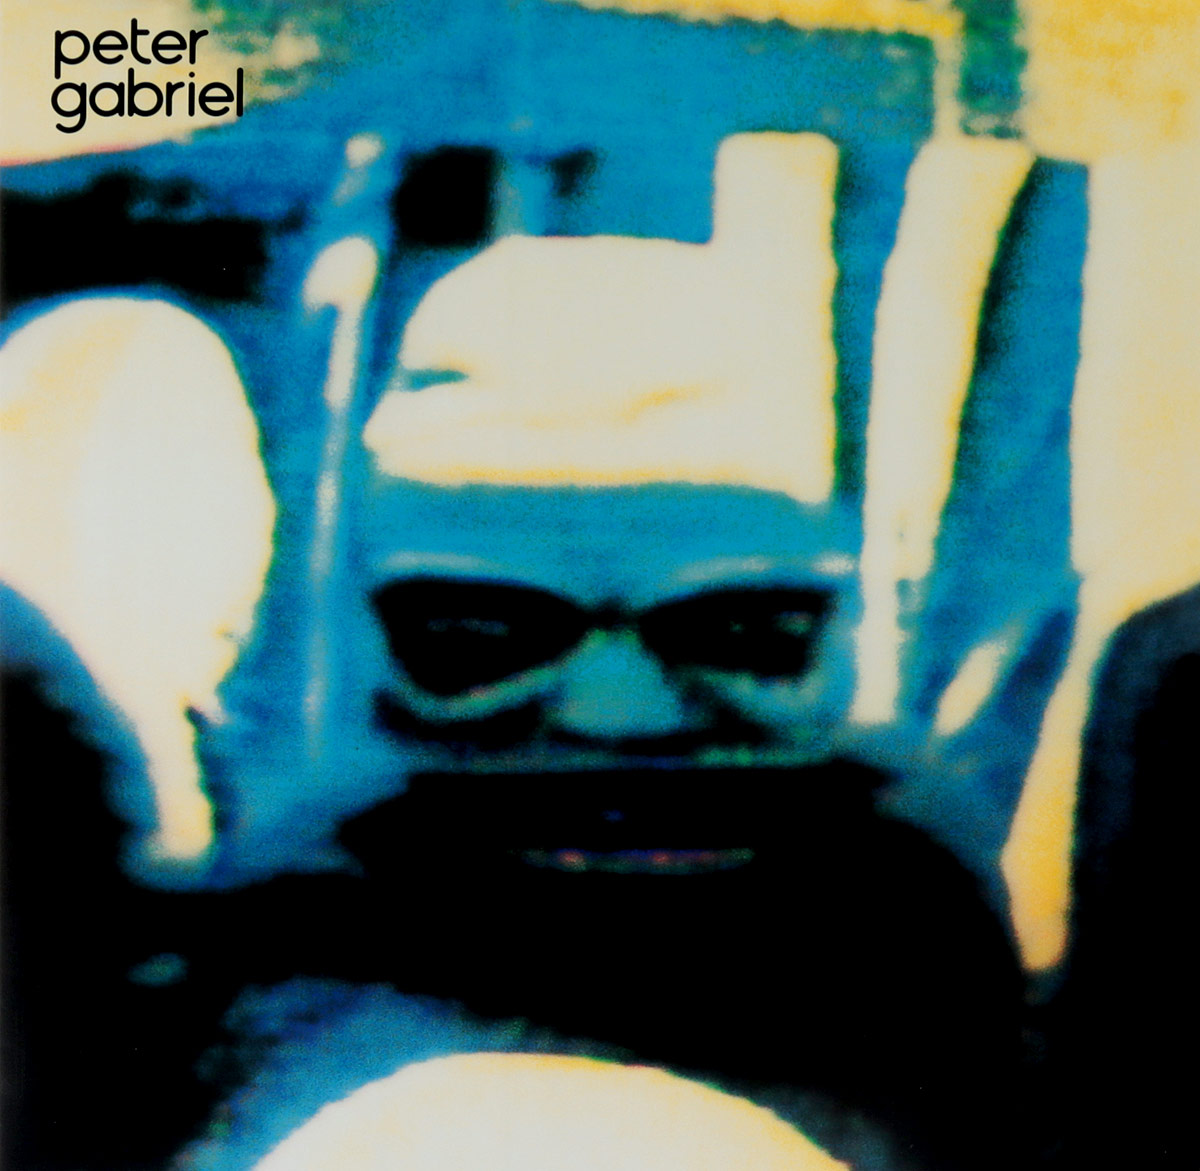 Питер Гэбриэл Peter Gabriel. Peter Gabriel 4. Security (LP) питер гэбриэл peter gabriel peter gabriel 4 security lp